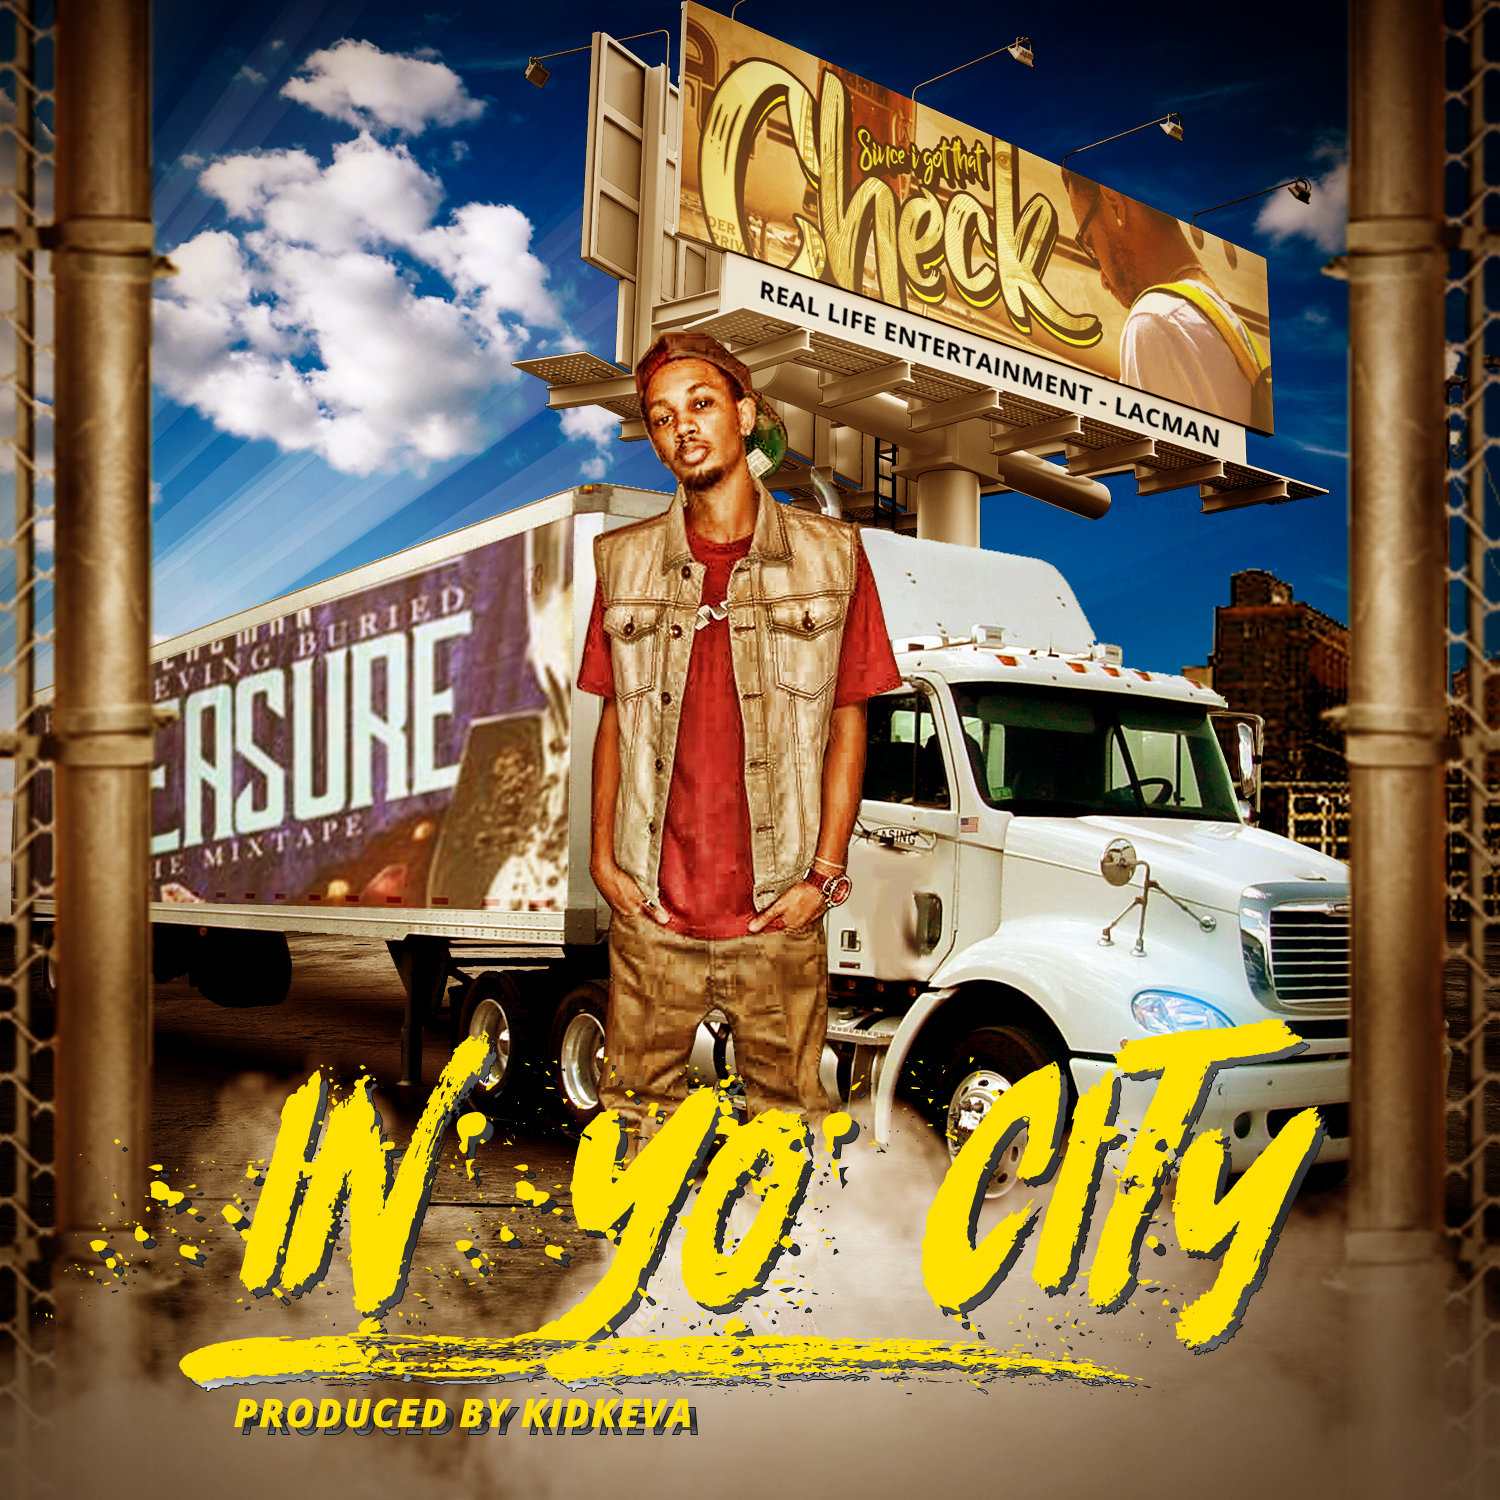 """""""In Yo City"""" is an absolute smash hit! The first thing noticeable about this track is the beat. The production on this  trap beat is  Flames itself, but it doesn't stop there. The catchy hook is so perfectly laced, you automatically get tuned in the moment you hear it. If you enjoy getting money &trap music then this is one definitely for you. Written & performed by artist  LacMan , coming straight outta   Nashville, Tennessee  . His focus now is on introducing his music to the world. He's currently working on the awaited project   """"Retrieving Buried Treasure The Mixtape""""  that will soon be dropped on  spinrilla & other platforms alike.Inspired by artist such as  J.Cole, Fabolous, T.I., Starlito & Eminem ...With dreams to travel & have similar success with music as the ones who inspired him. Certainly off to an amazing start of his career with the new single  """"In Yo City"""" . I rate this single  5 outta 5 Flames! Click the link below to listen, Download & (or) share.      Name: LacMan   Rating:  5 Flames   Link:  https://open.spotify.com/album/4CpG40F83UJfMEfAnmOlAO    Location: Nashville, Tennessee"""